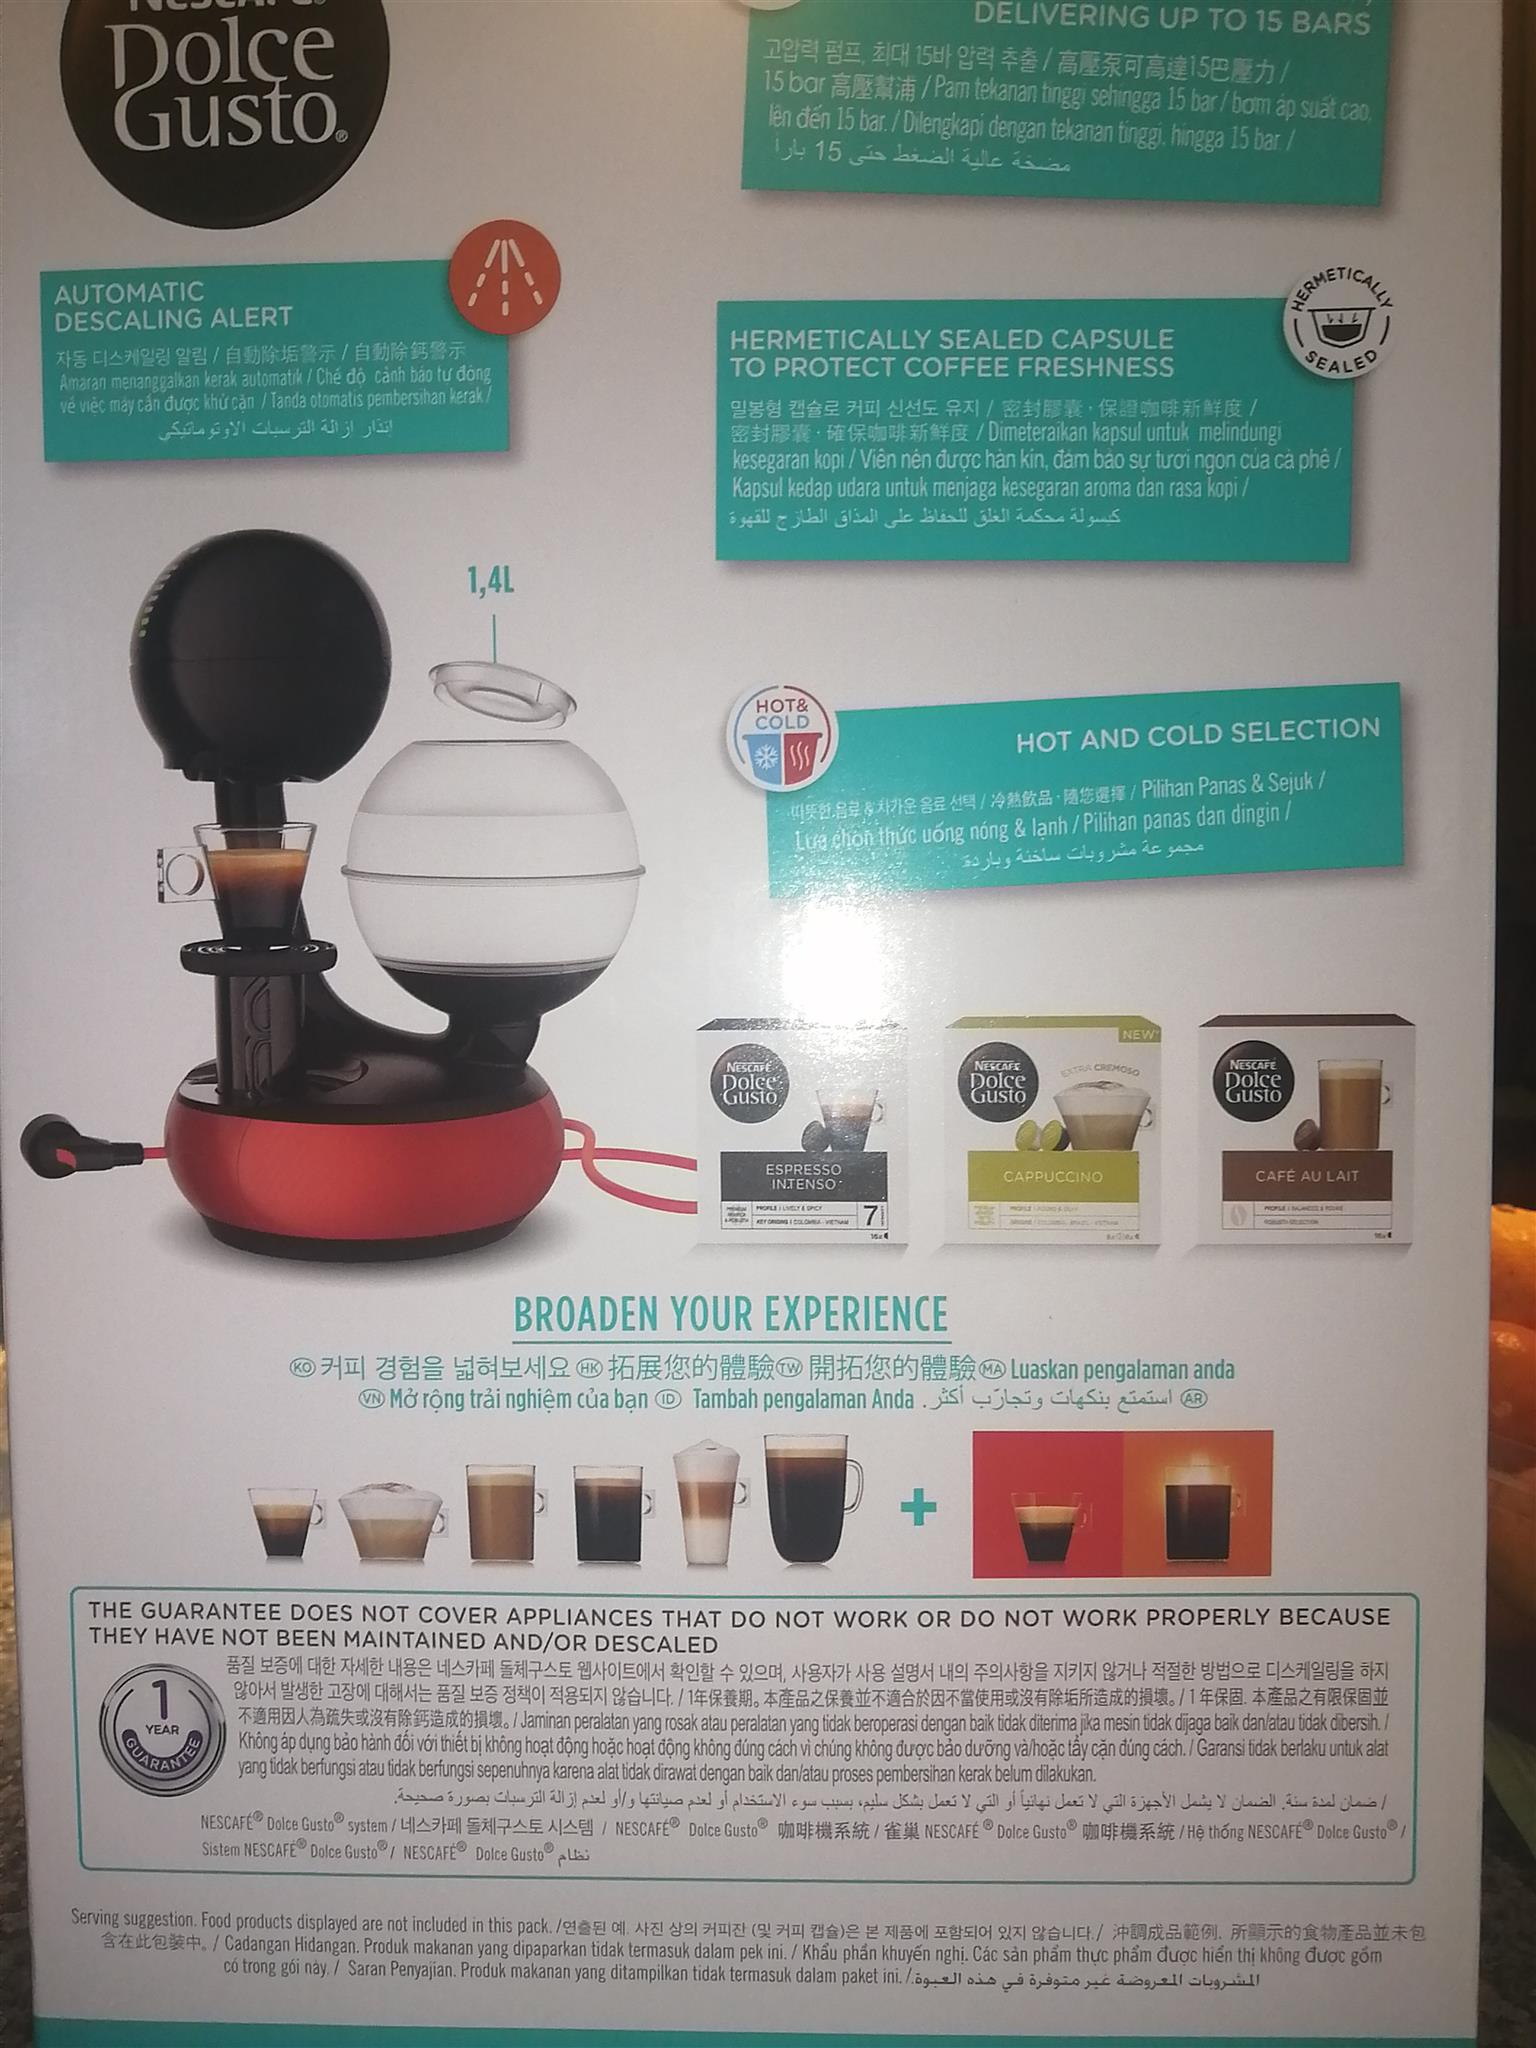 BRAND NEW!! NEVER BEEN USED!!Nescafe Dolce Gusto Esperta- R1400